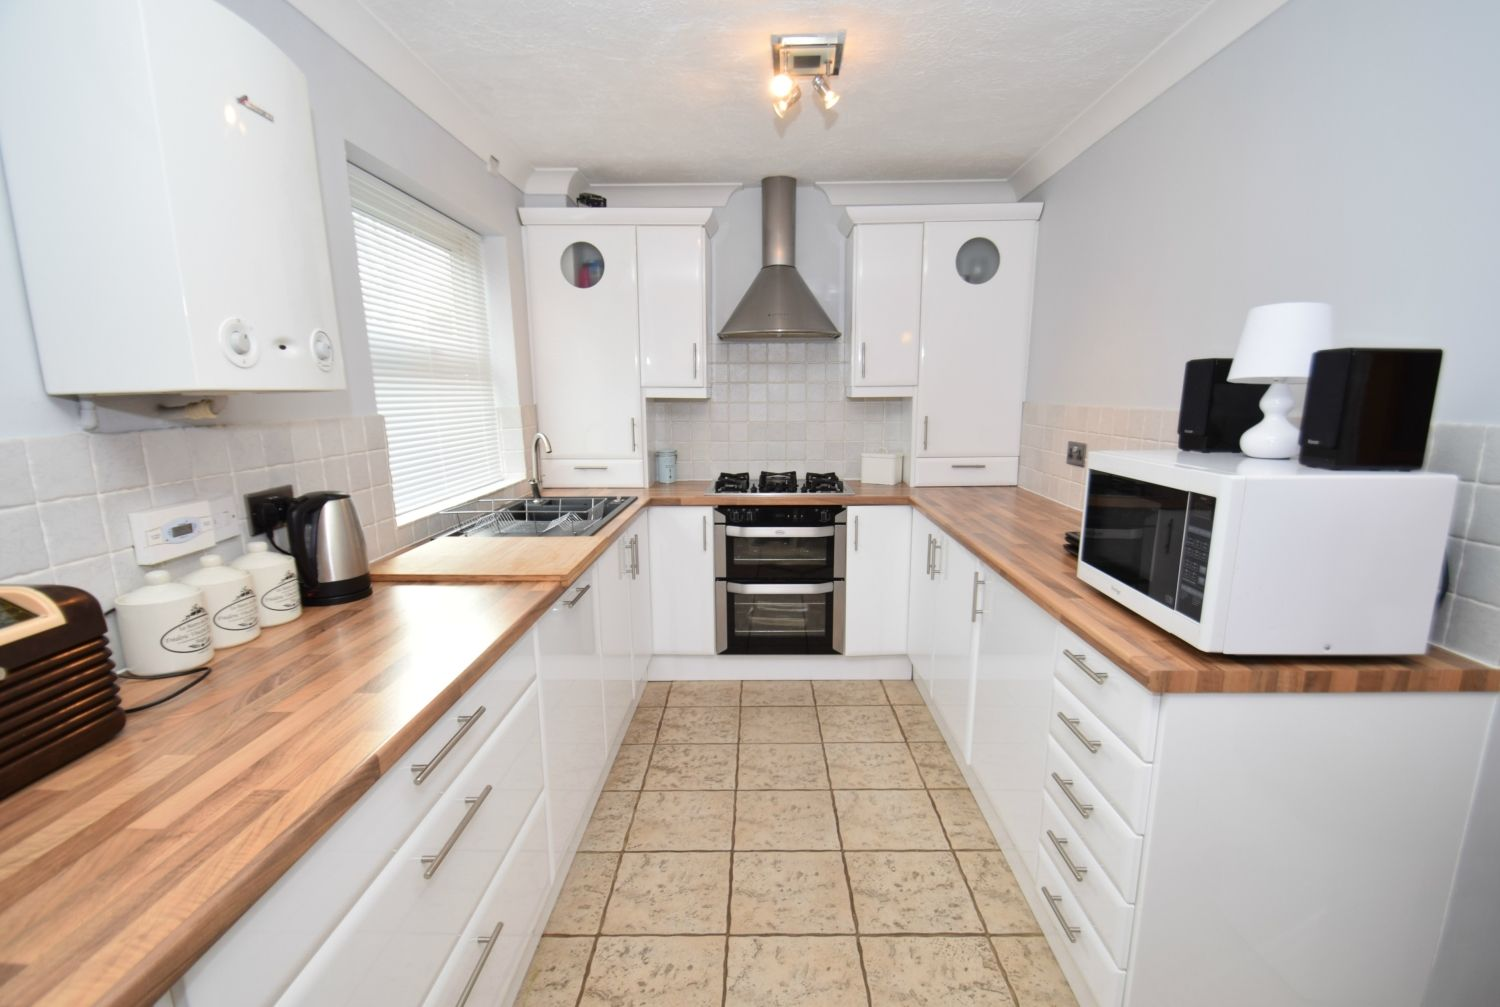 3 bed detached for sale in Foxes Close, Blackwell, B60 2